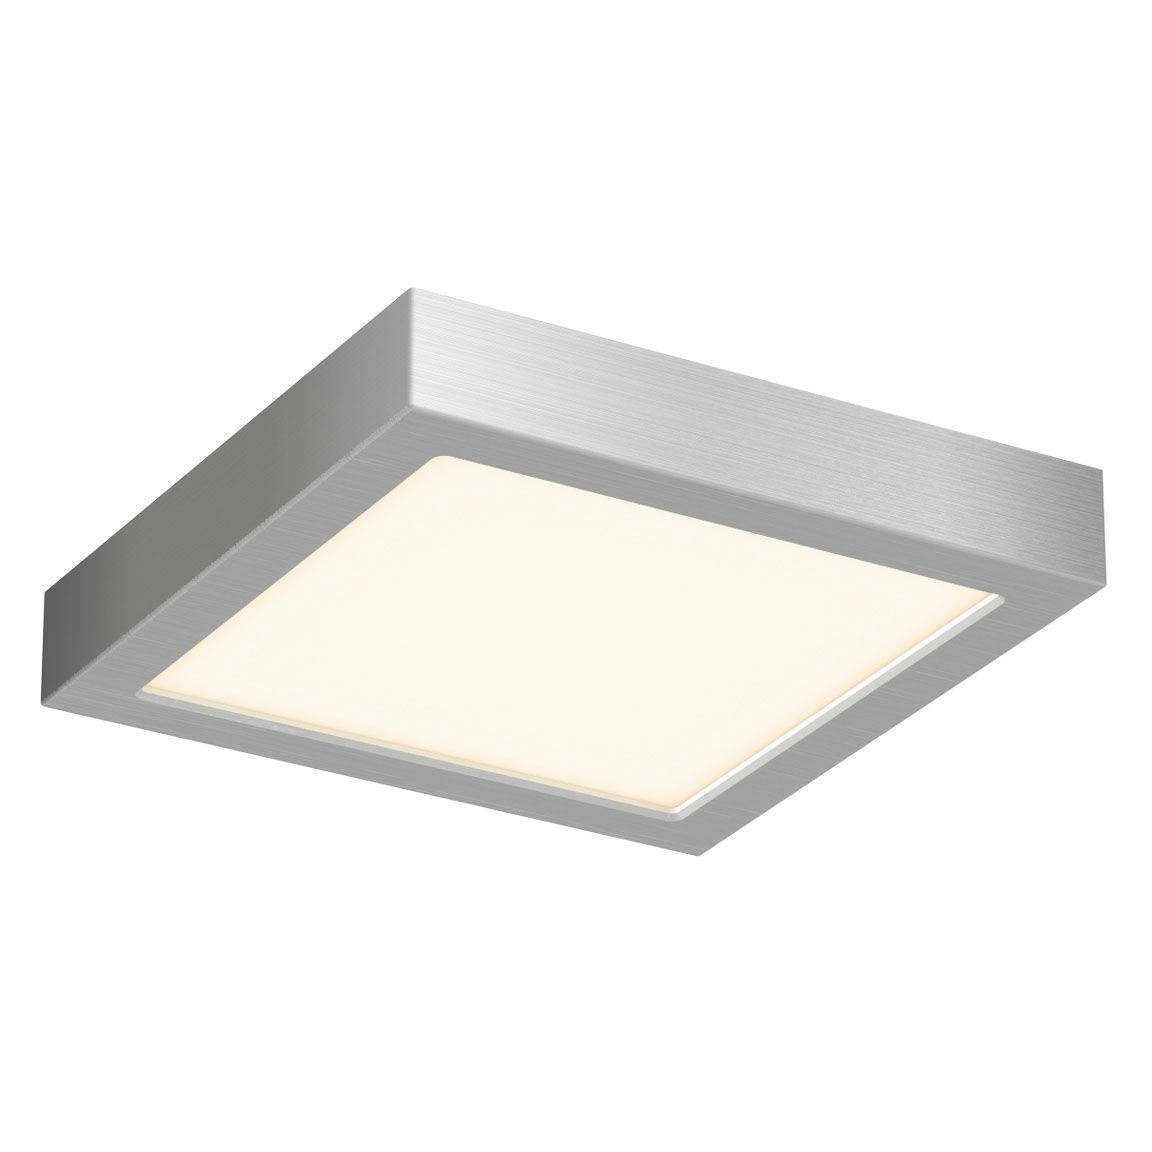 Cfledsq Square Ceiling Light Fixture By Dals Lighting Cfledsq06 Sn In 2020 Flush Mount Ceiling Lights Led Flush Mount Ceiling Lights